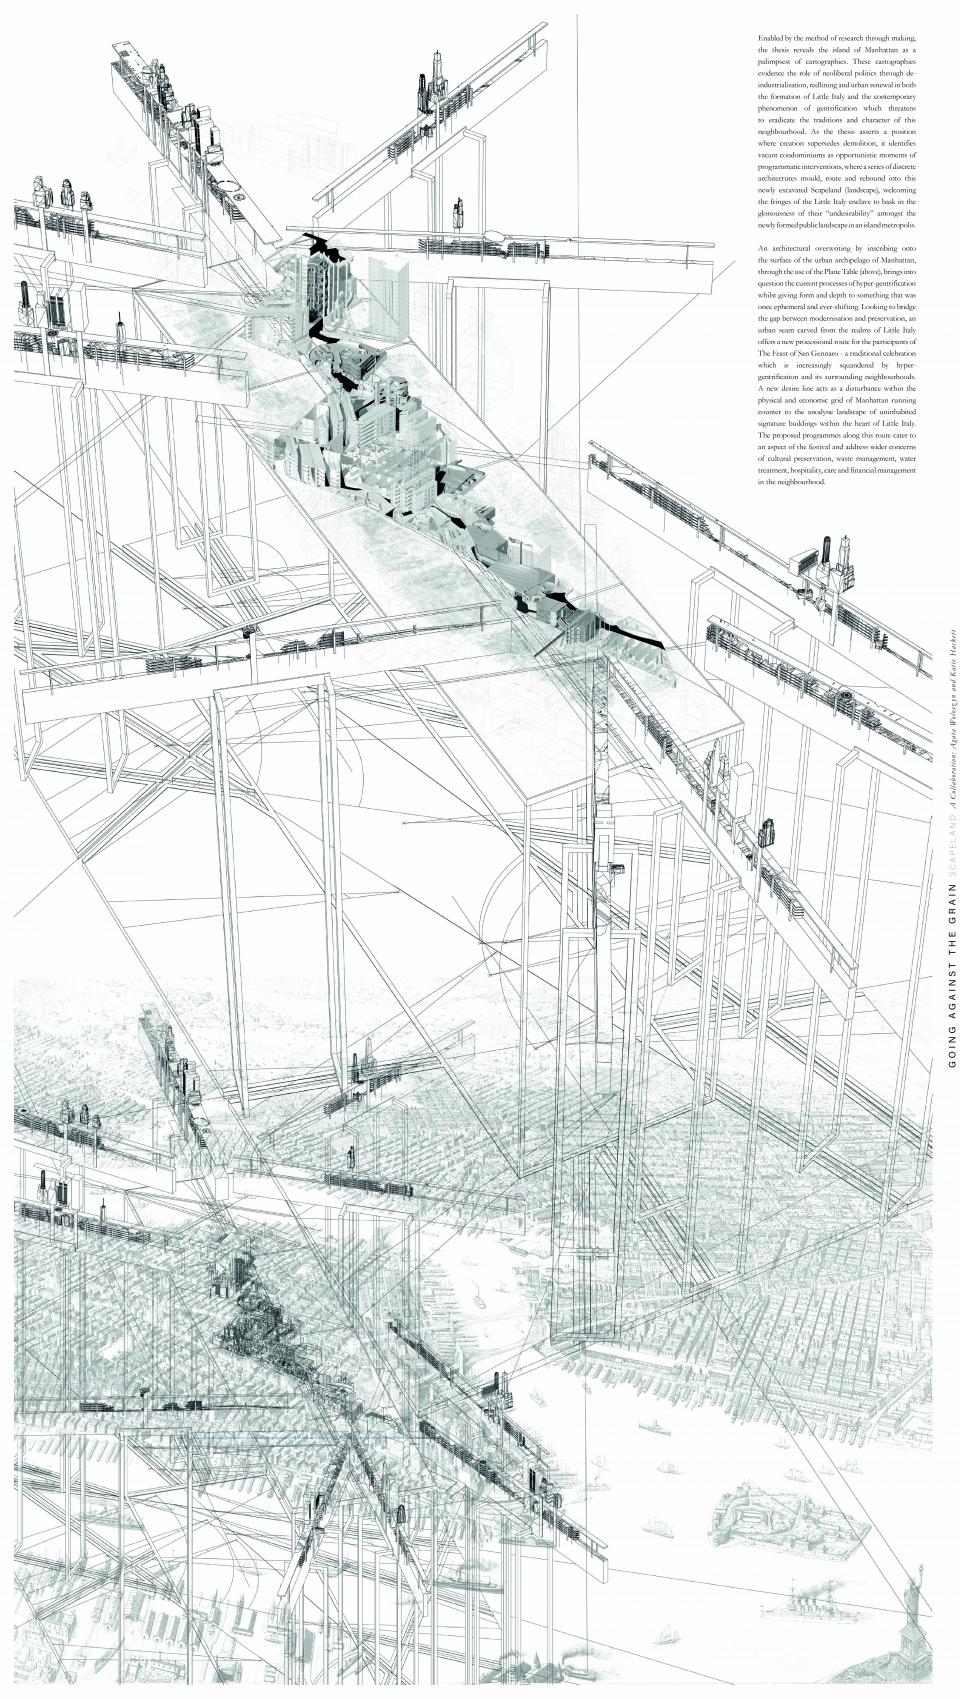 Katie Hackett and Agata Woloszyn_Architecture - MArch_2020_Going Against the Grain_1.jpg